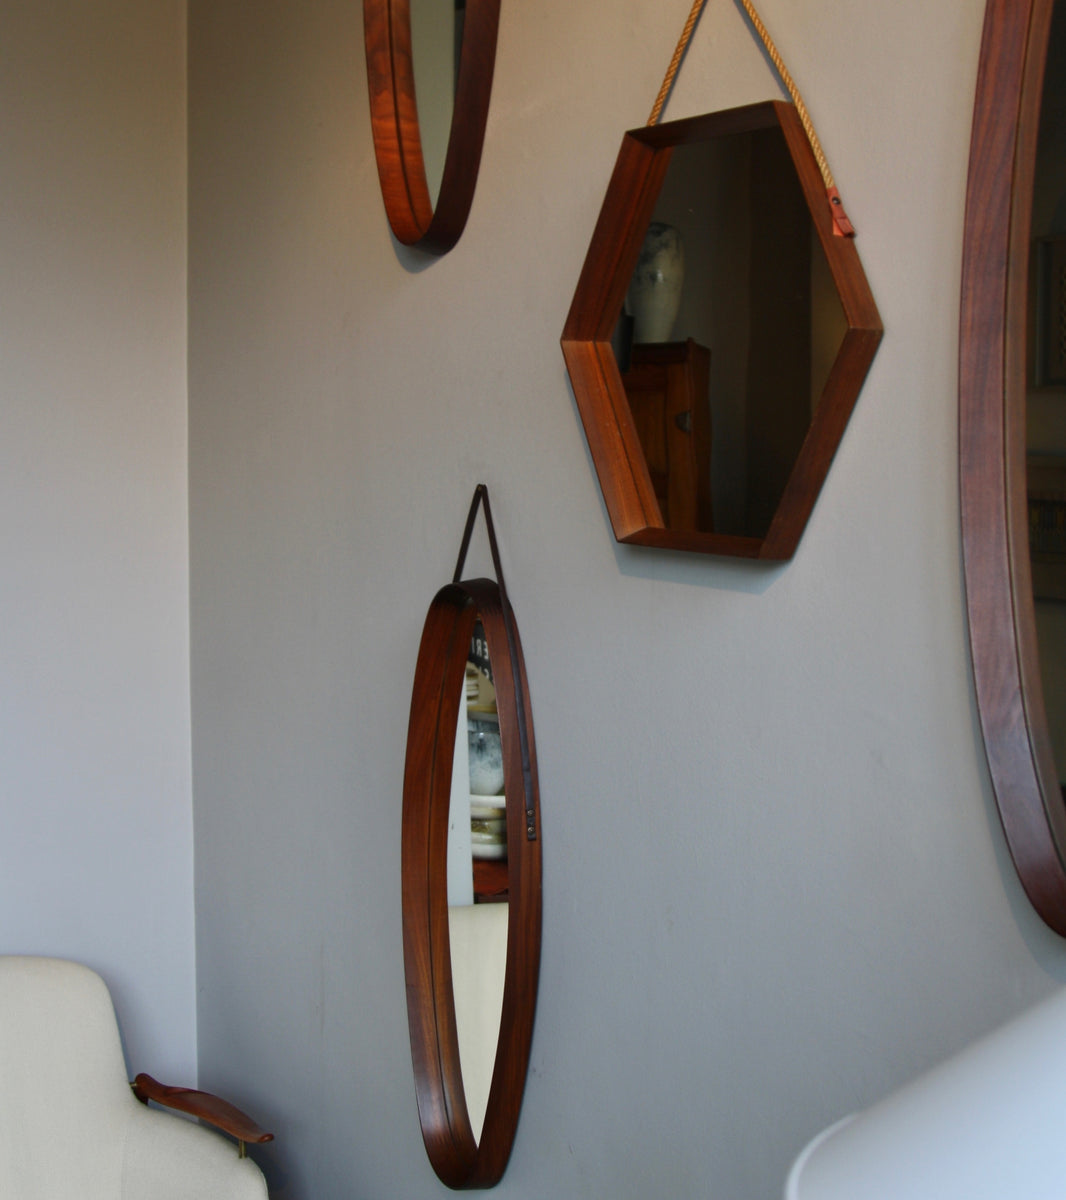 Solid Teak Oval Mirror with Leather Strap Denmark C. 1950